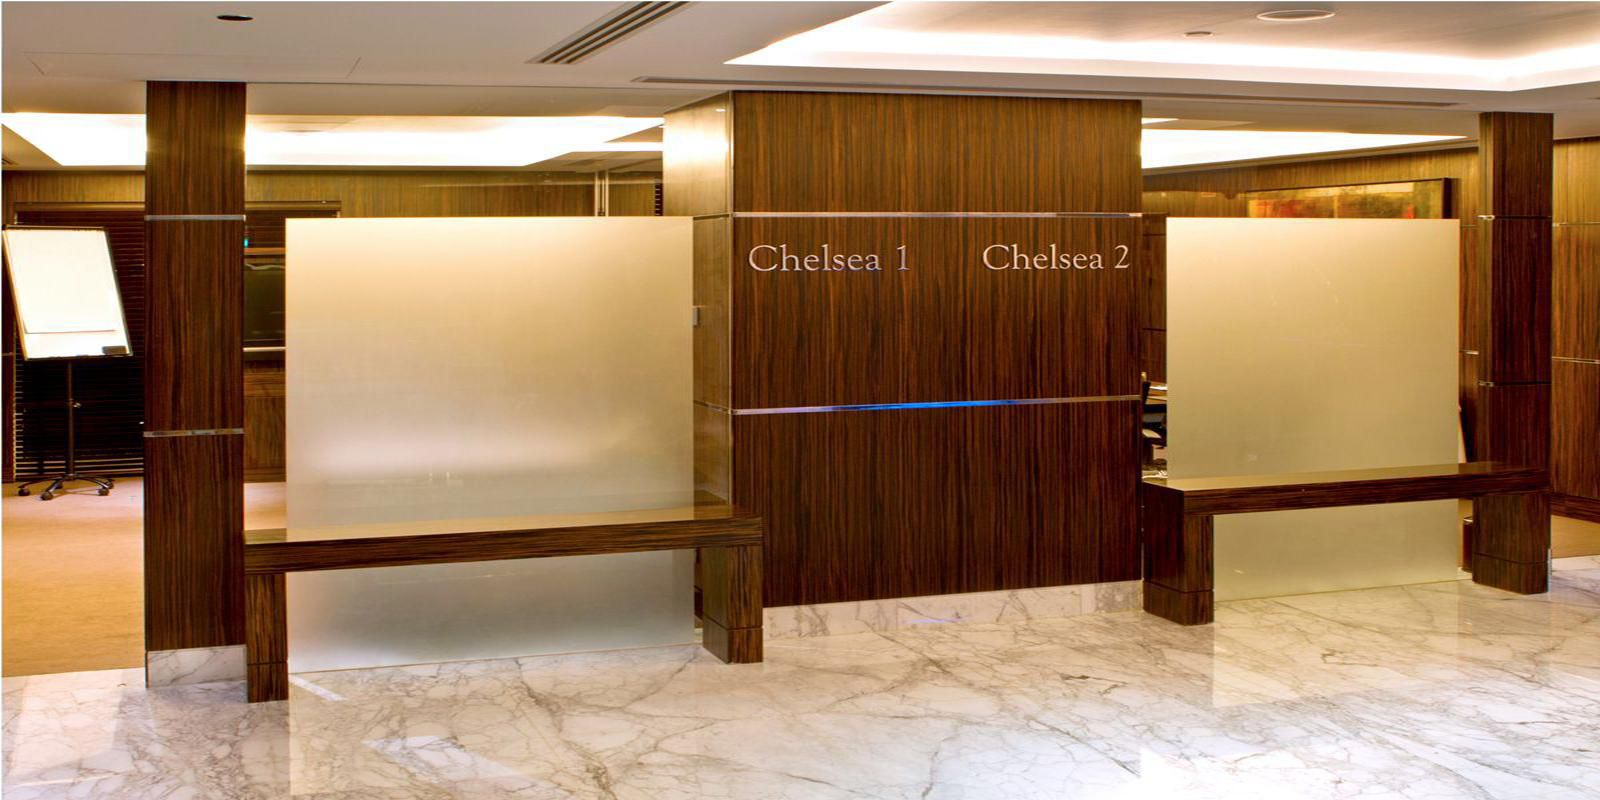 Chelsea 1 & 2 meeting rooms at the Business Centre